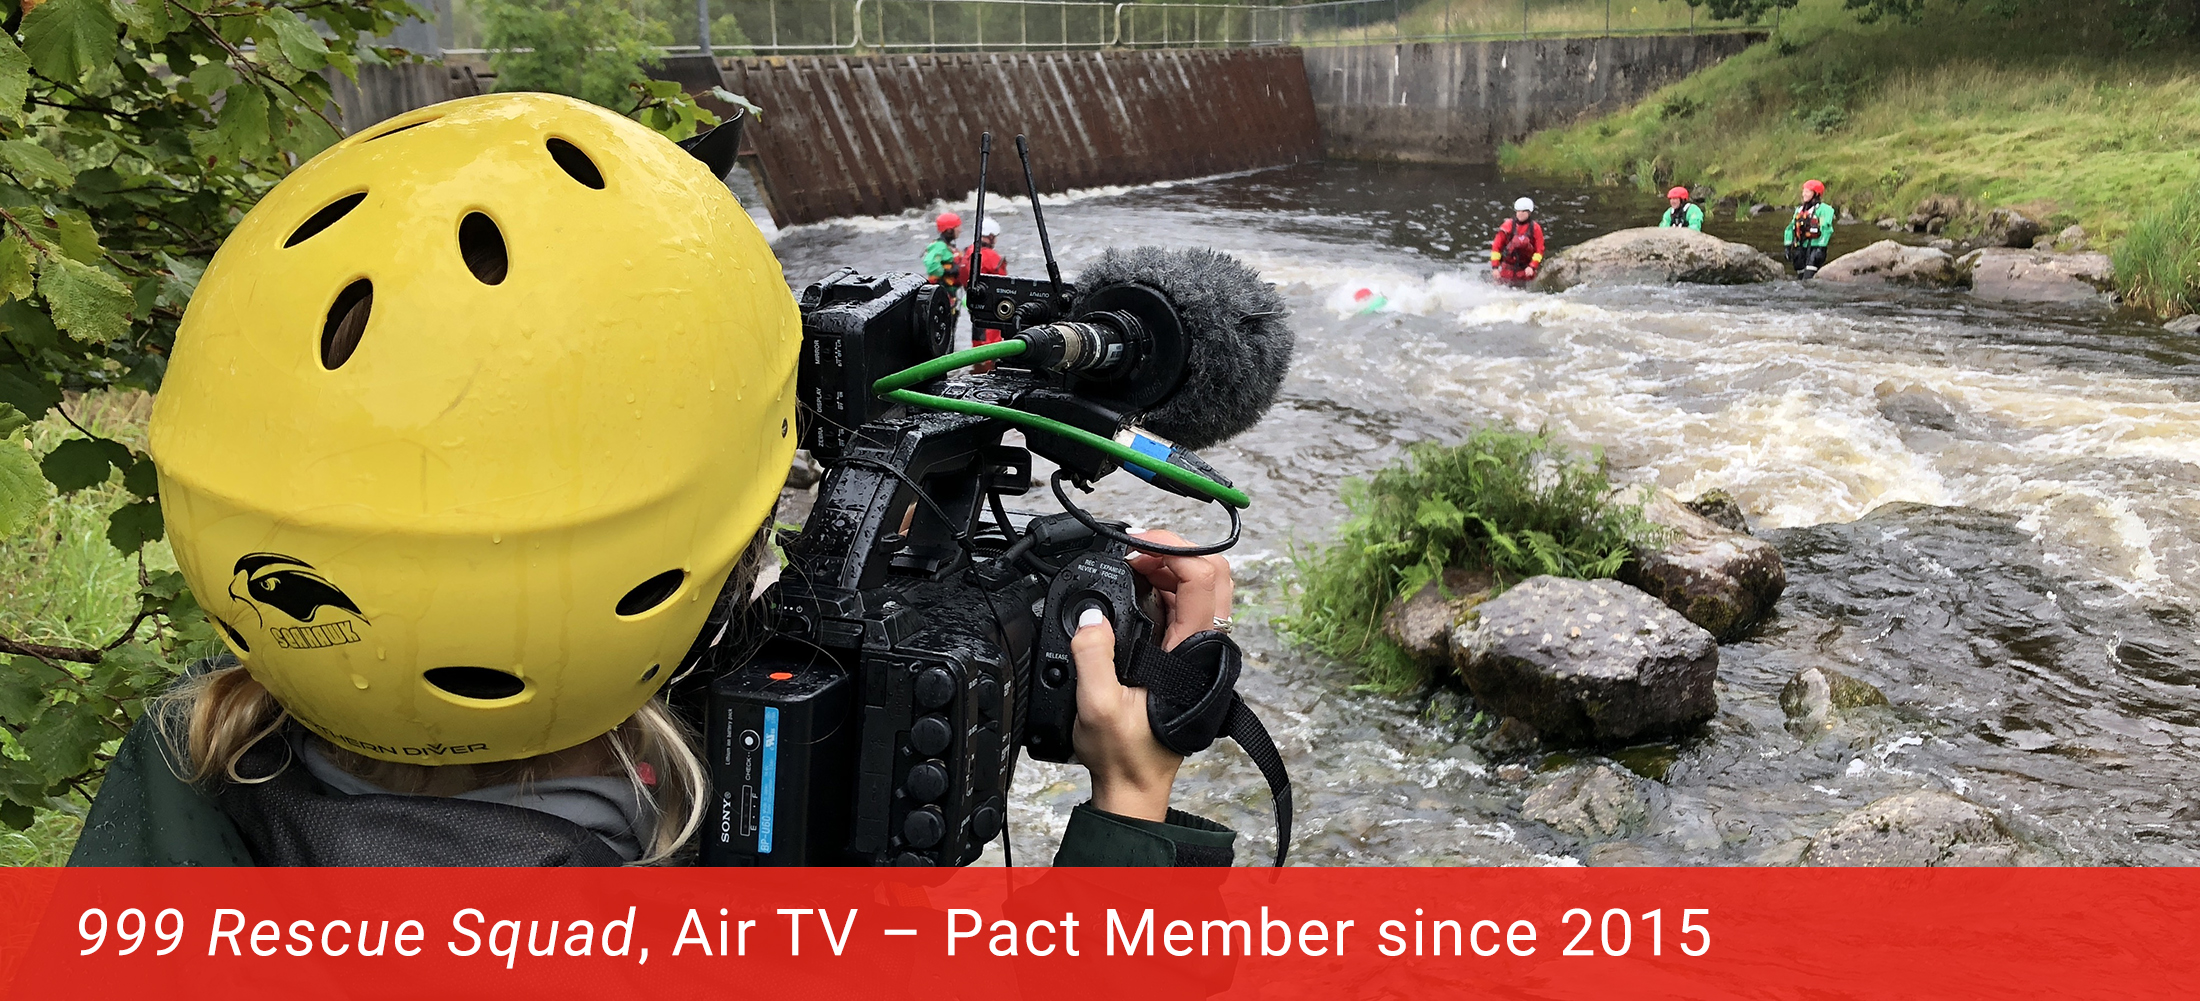 Image: 999 Rescue Squad made by Air TV, Pact Member since 2015